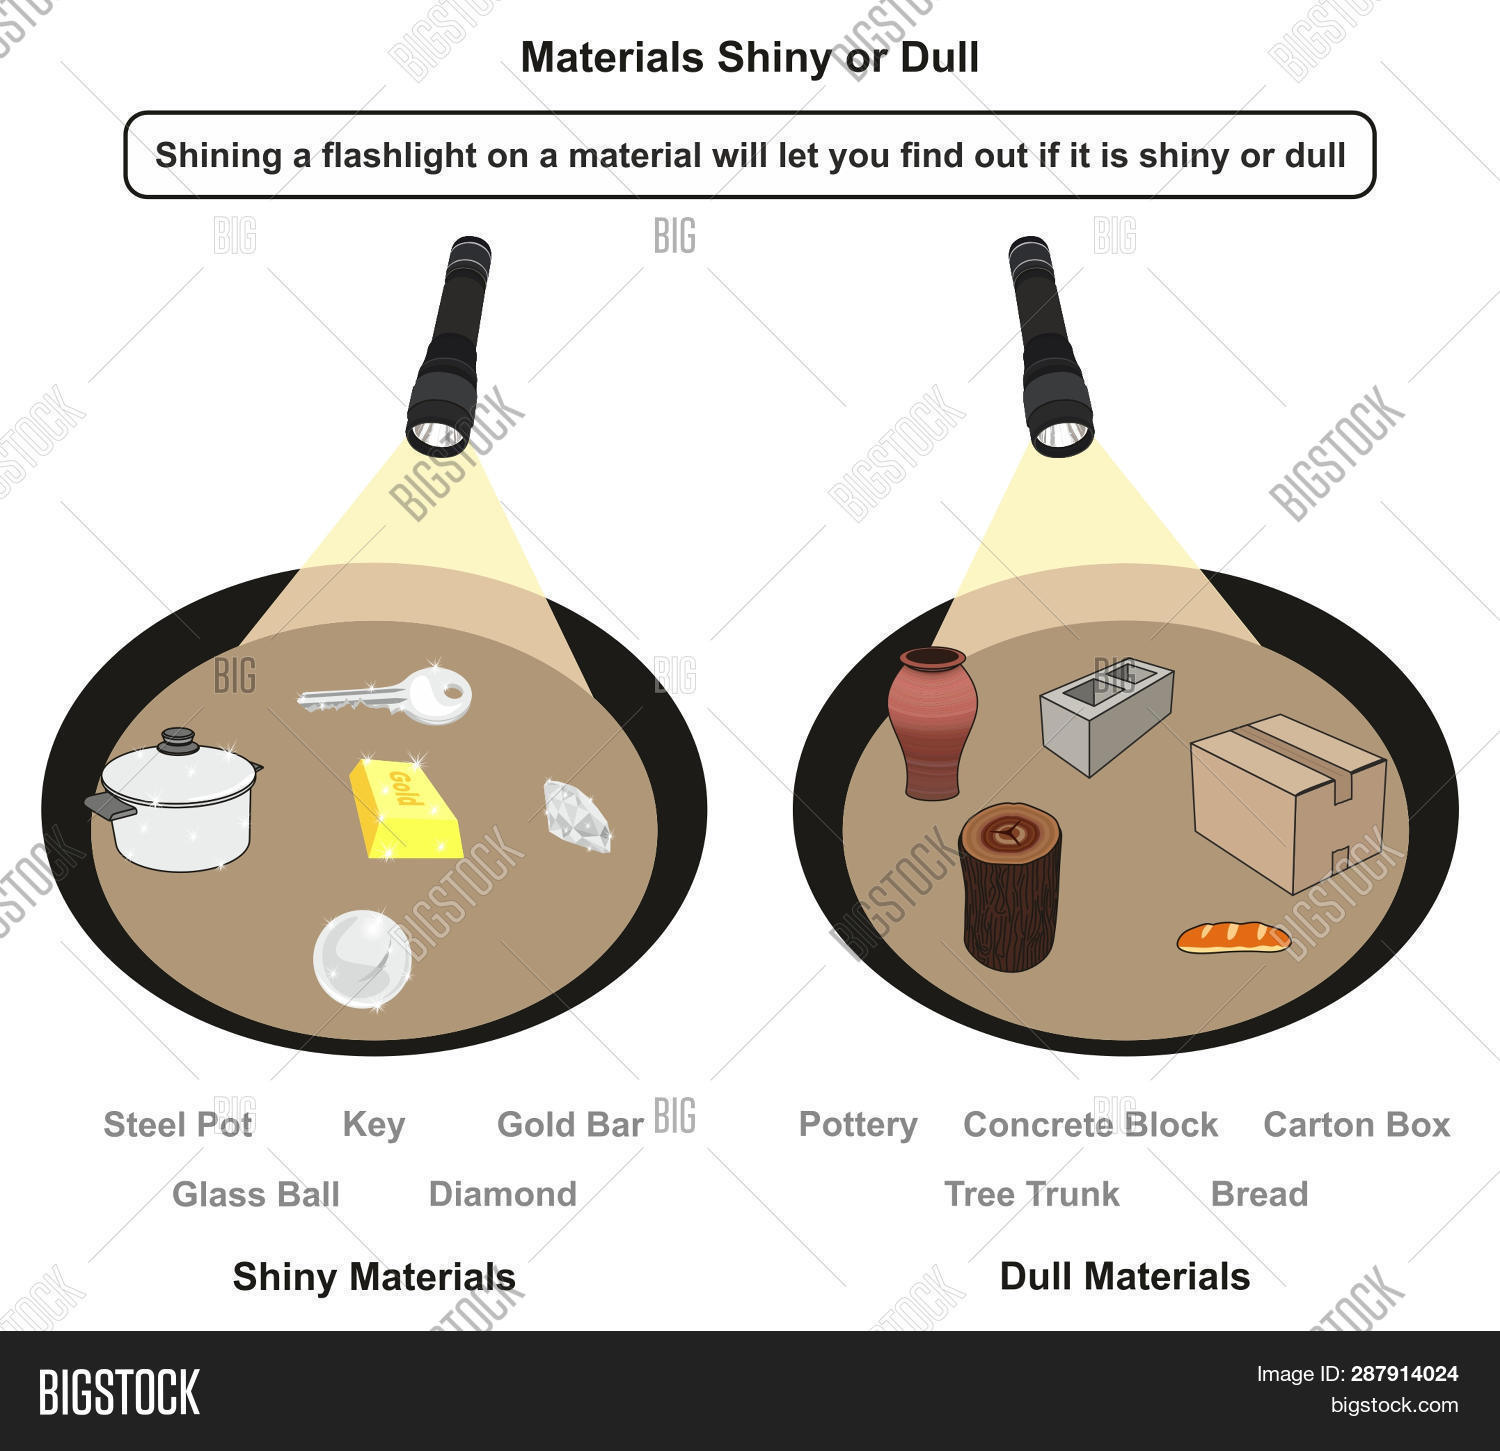 Materials Shiny Dull Image & Photo (Free Trial) | Bigstock